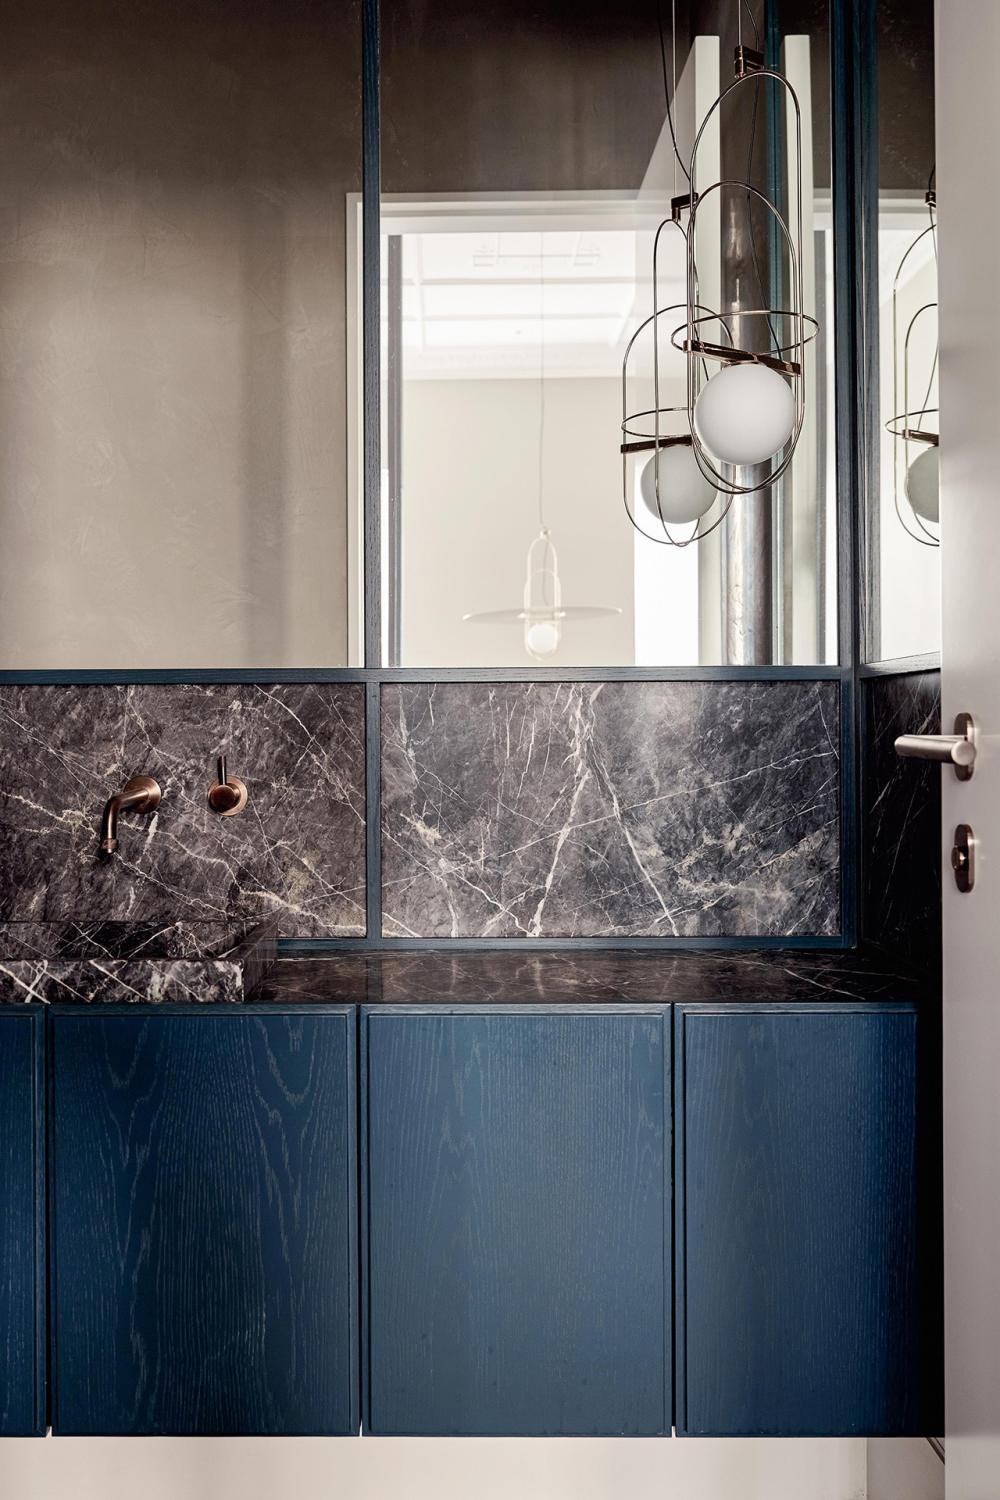 House tour: an elegant heritage Melbourne home restored with a moody colour palette-12.jpg